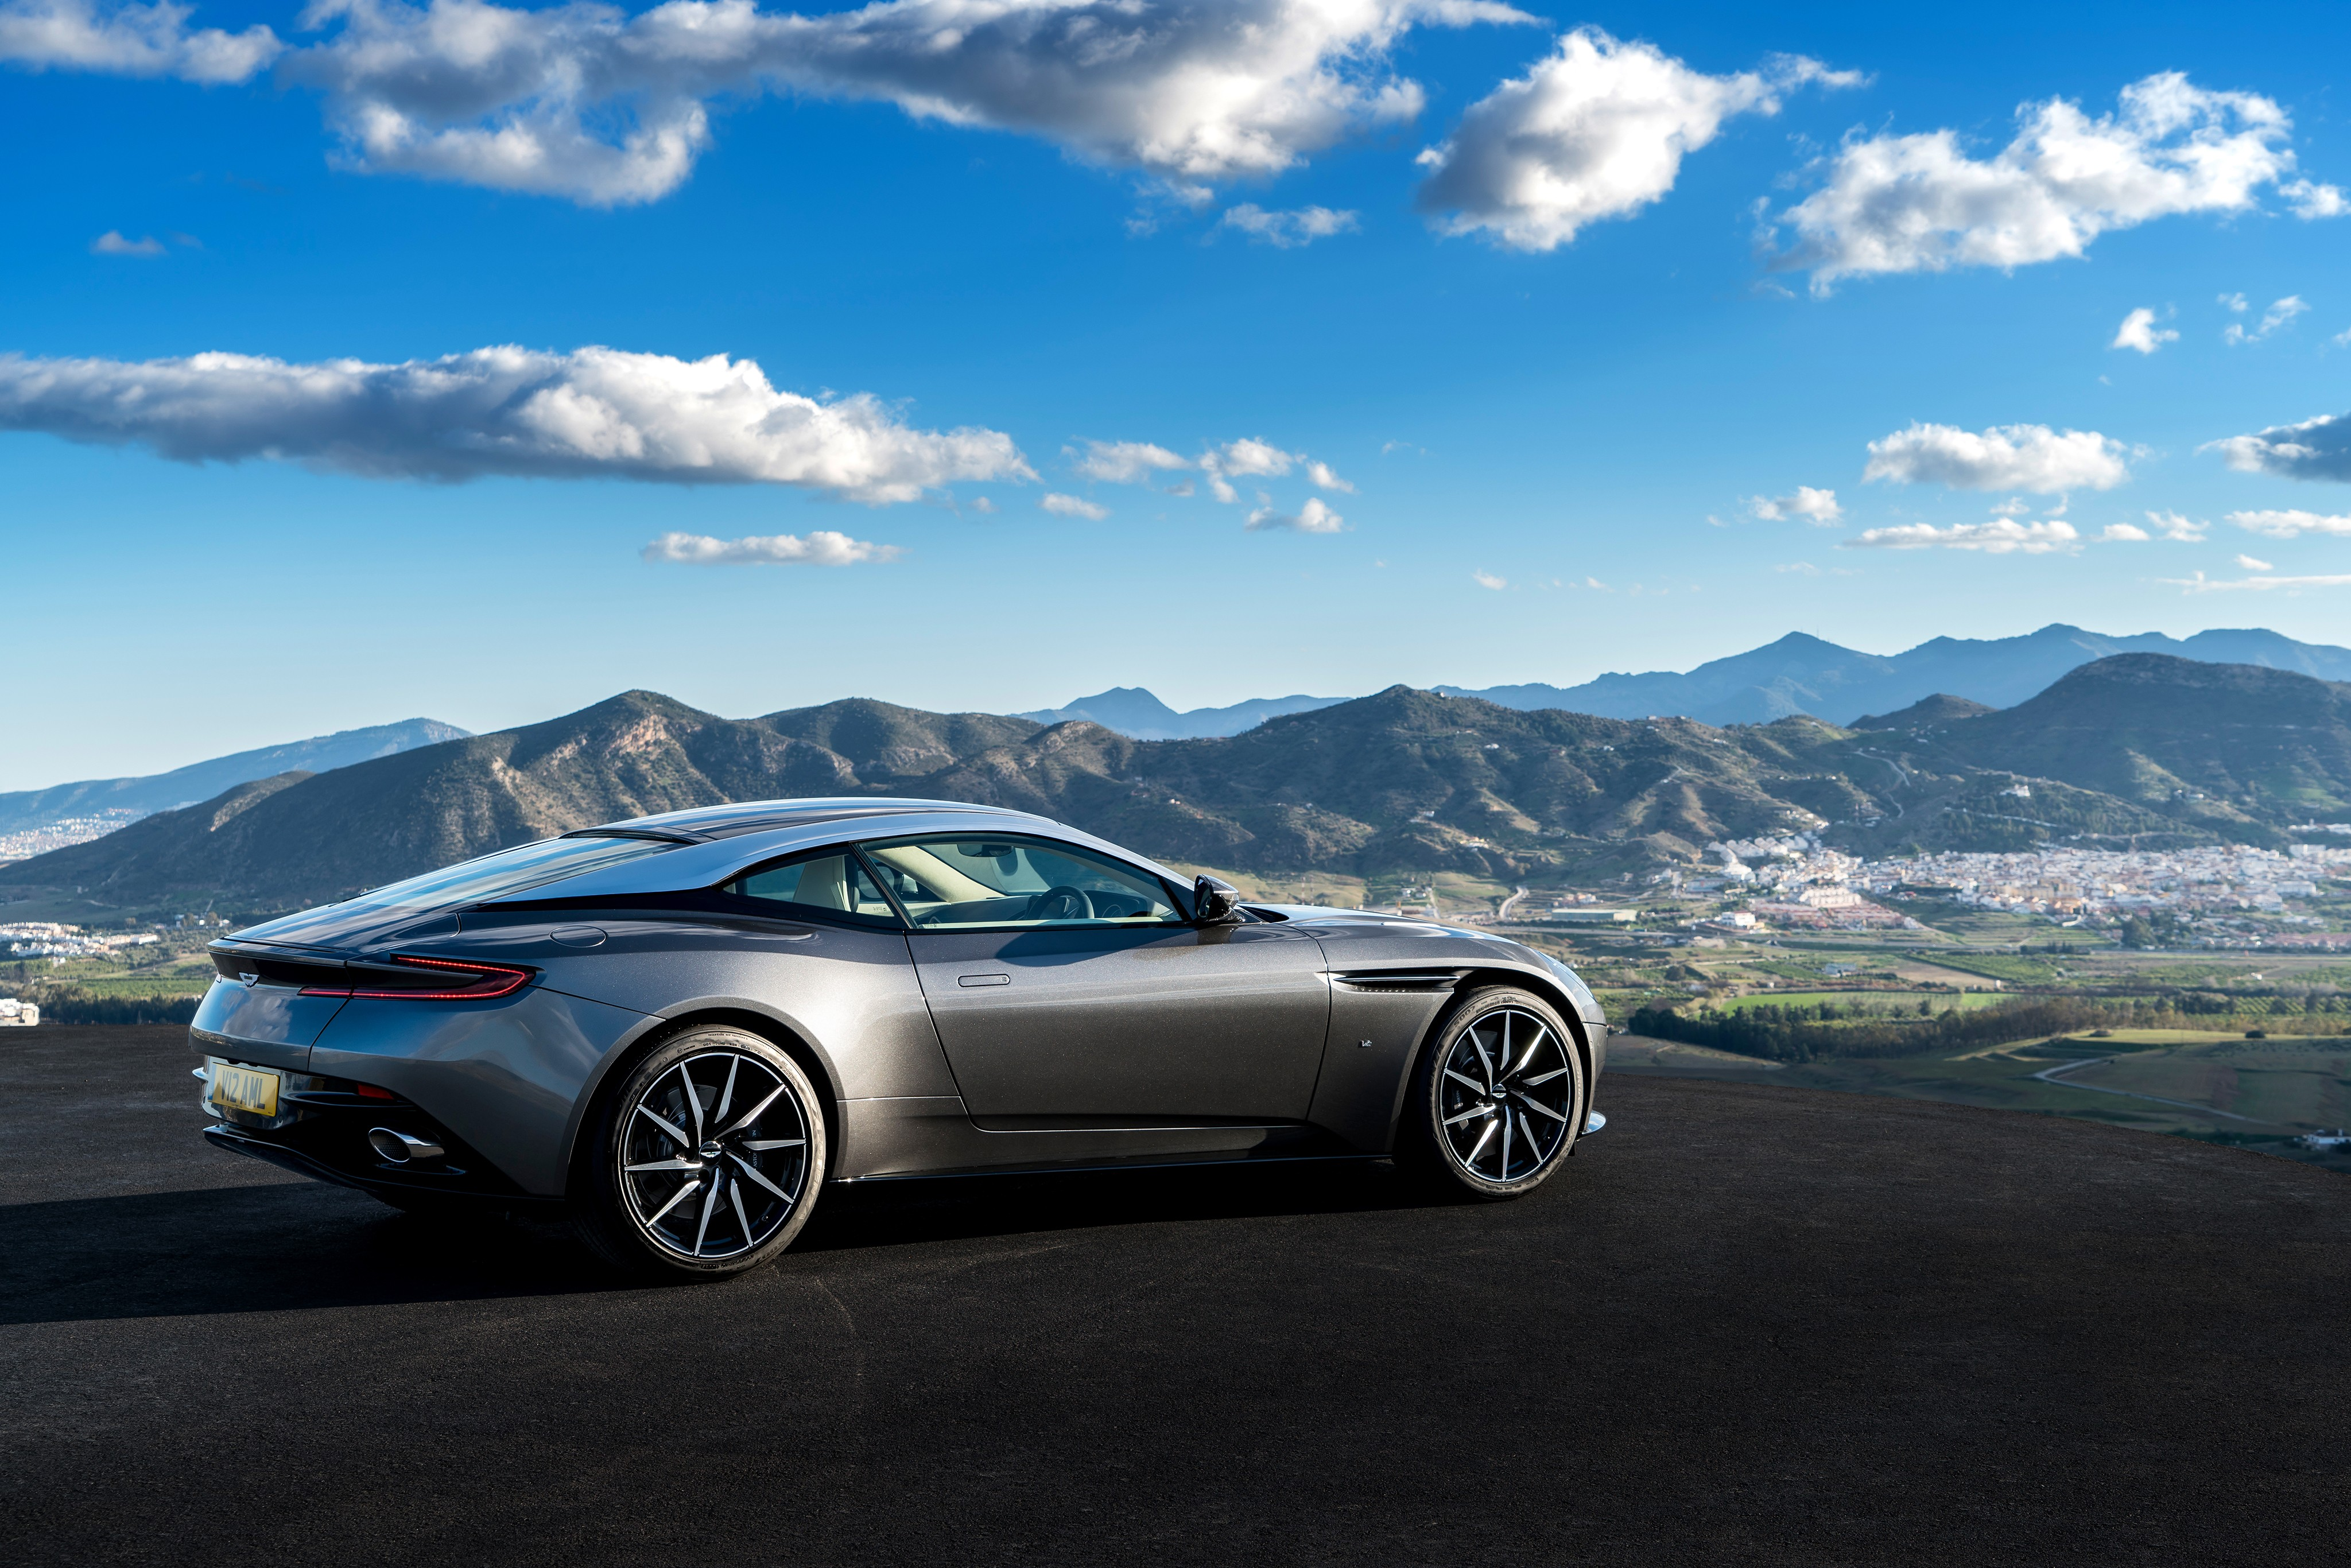 Wallpaper Aston Martin Geneva Auto Show Supercar Cars